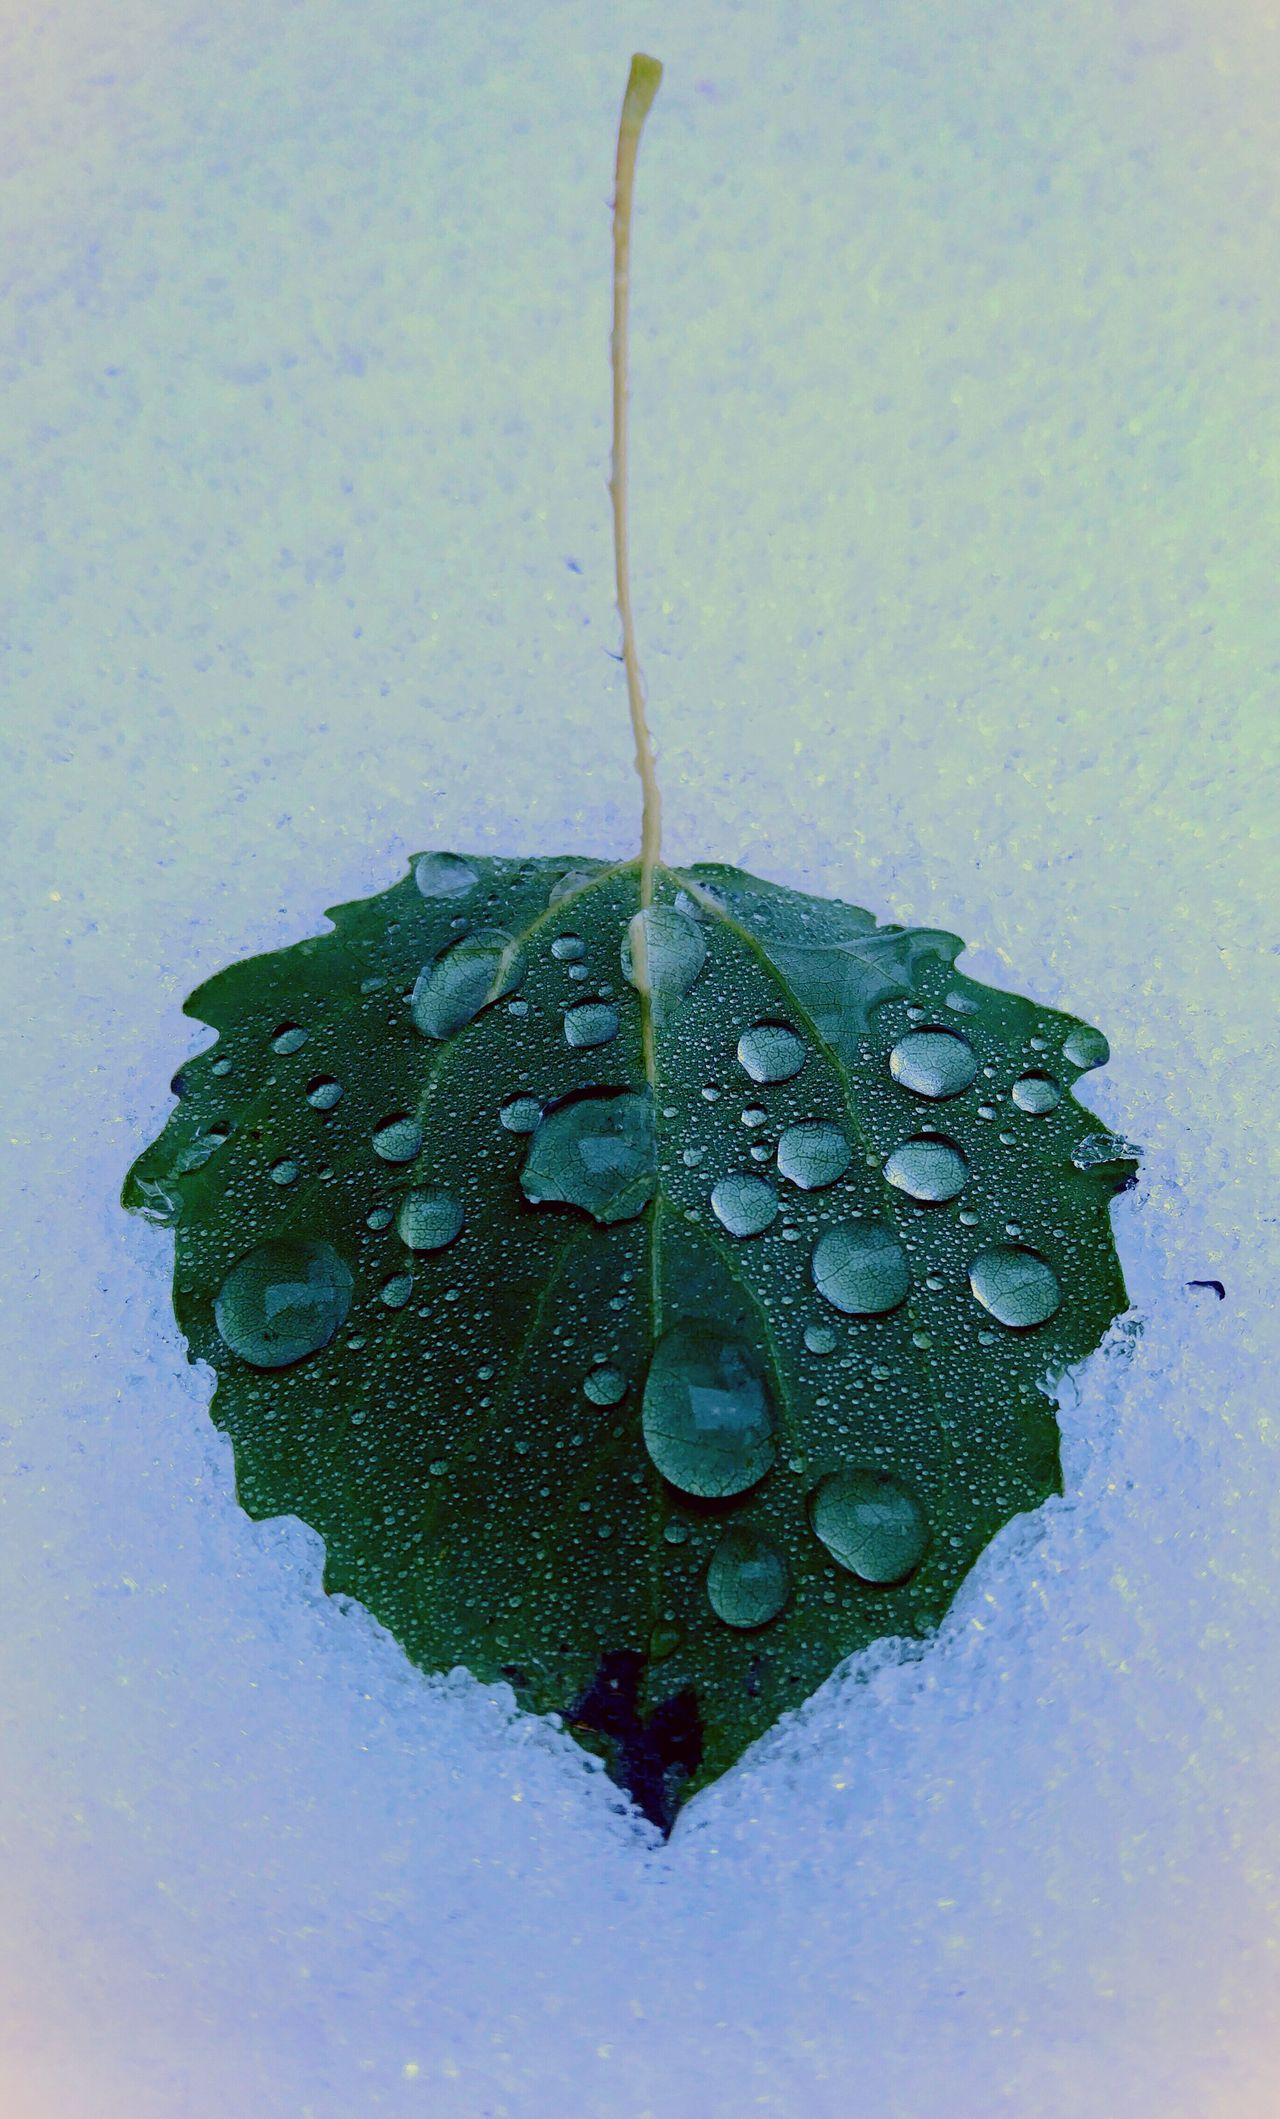 Beads Water Drop Outside Taking Photos EyeEm Gallery Natural Beauty Close-up Mothernature Walking Around Real Life Detailoftheday Good Morning Beads Of Water EyeEm Nature Lover Mother Nature Leaf Vein Leaf 🍂